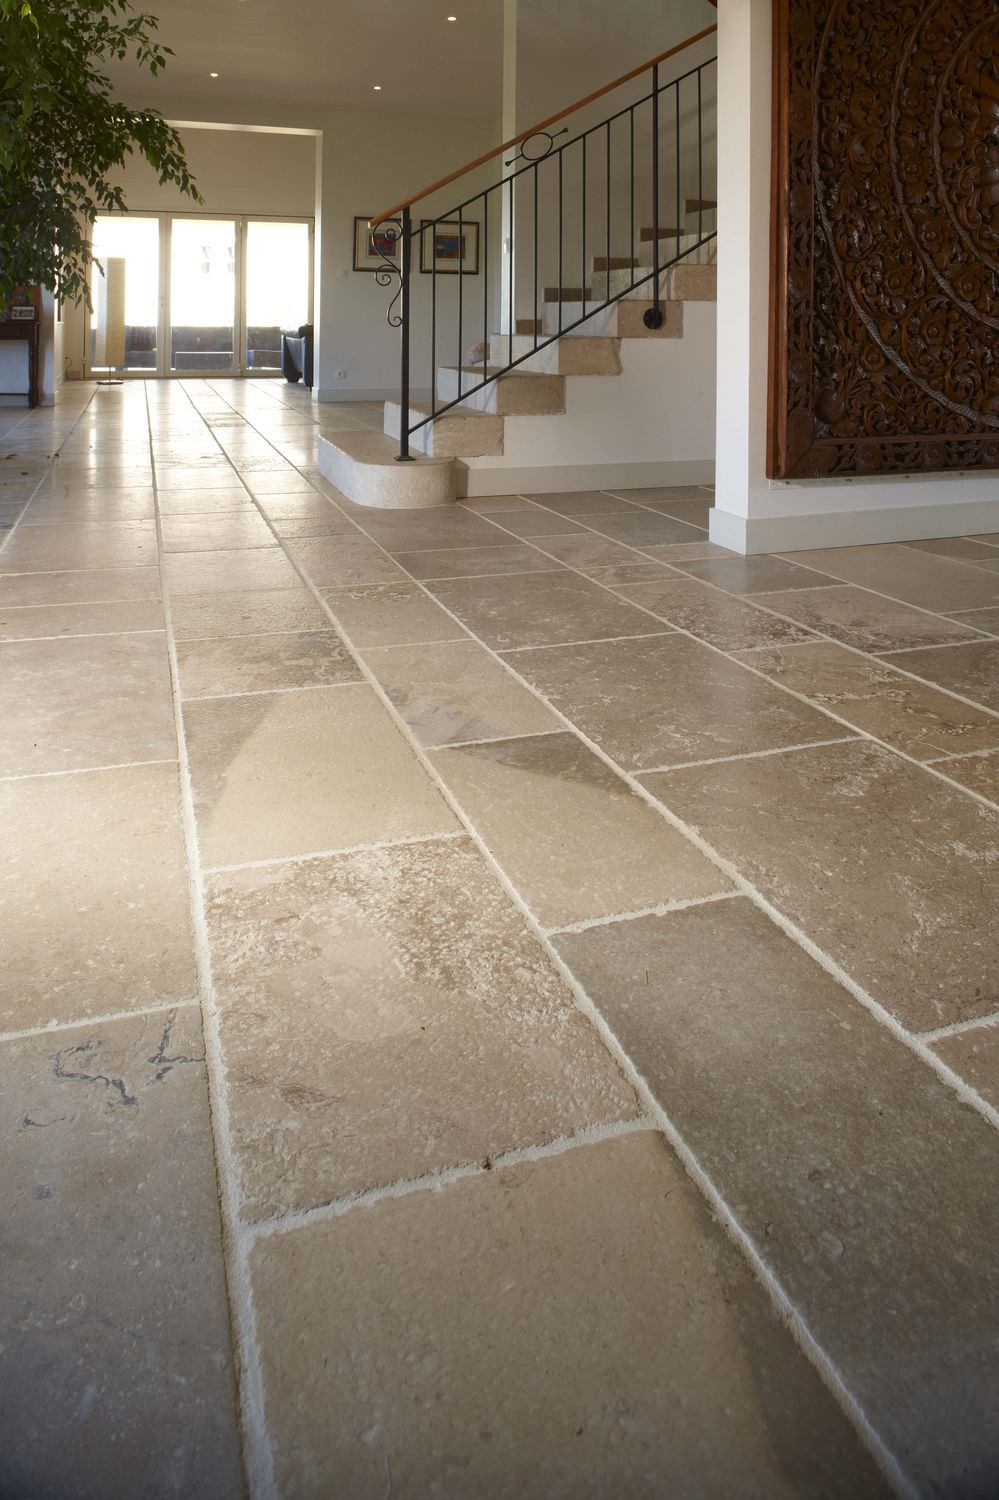 Natural stone tile shower images natural stone look floor tile dailygadgetfo Image collections